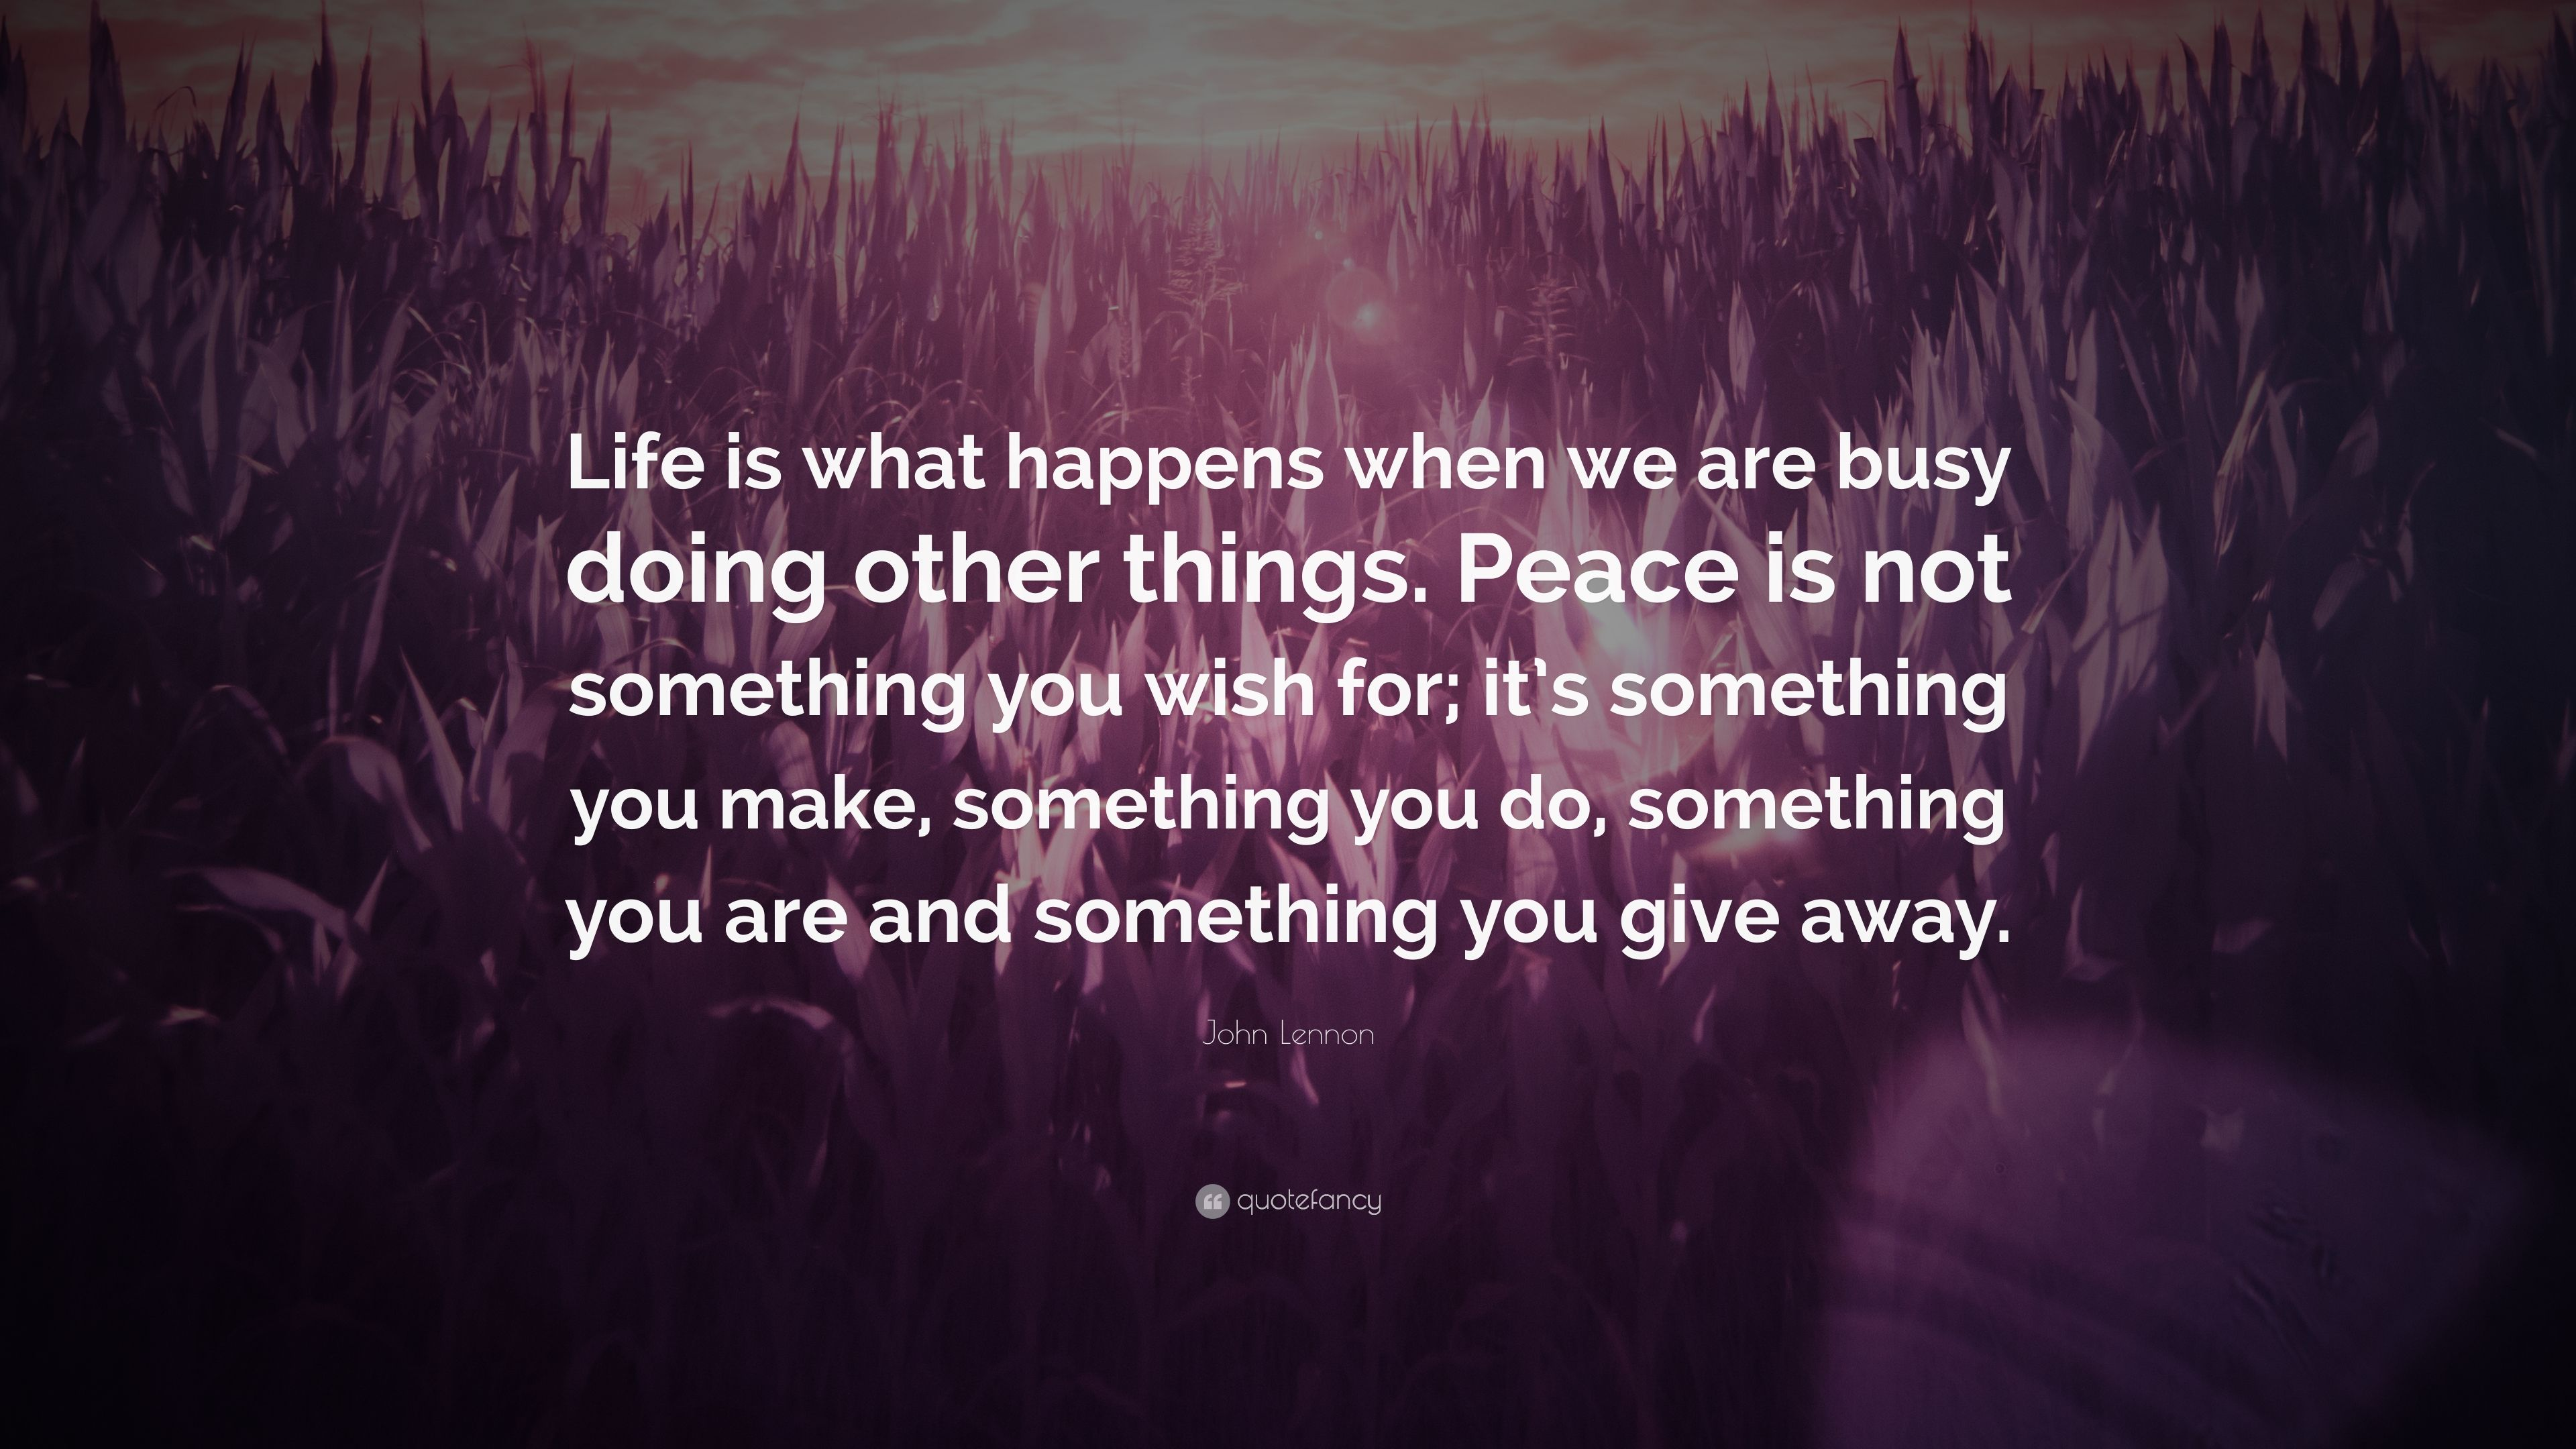 John Lennon Quote Life Is What Happens When We Are Busy Doing Other Things